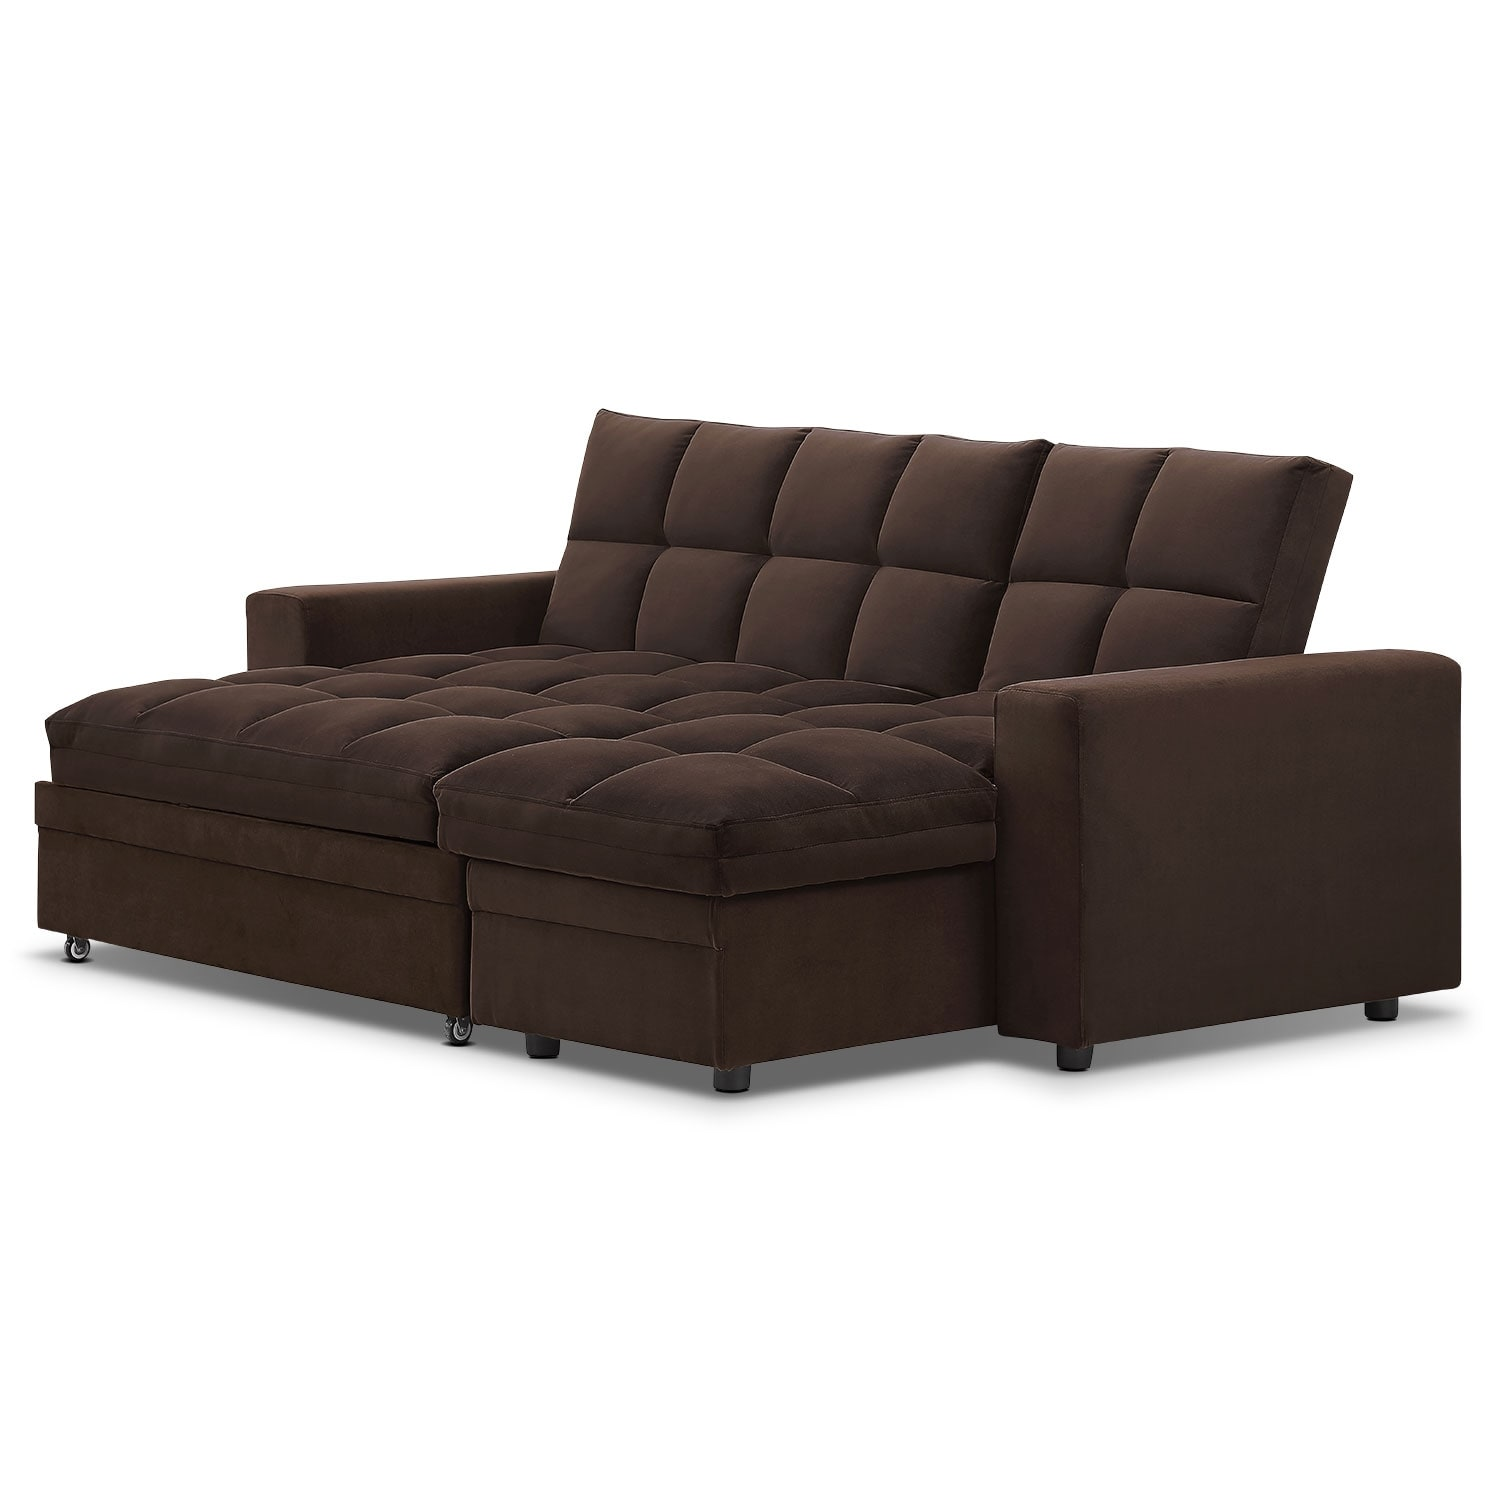 Metro chaise sofa bed with storage brown value city for Sofa organizer